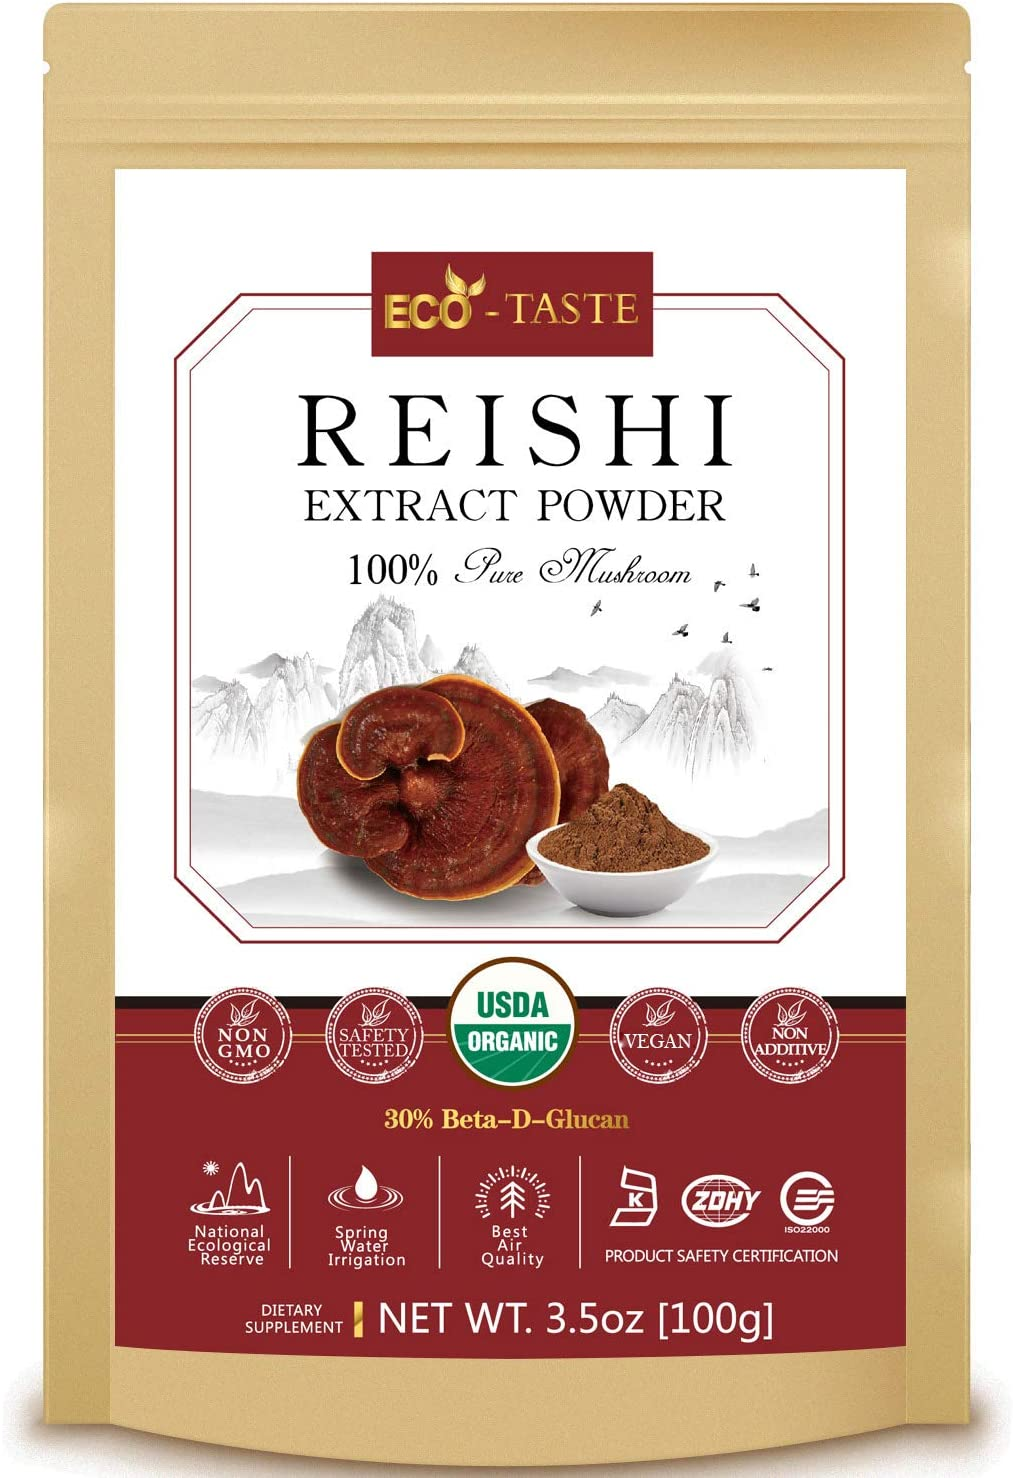 Reishi Mushroom Extract Powder 20 1,USDA Organic, 30 Beta-D-Glucan Supplement, 3.5oz